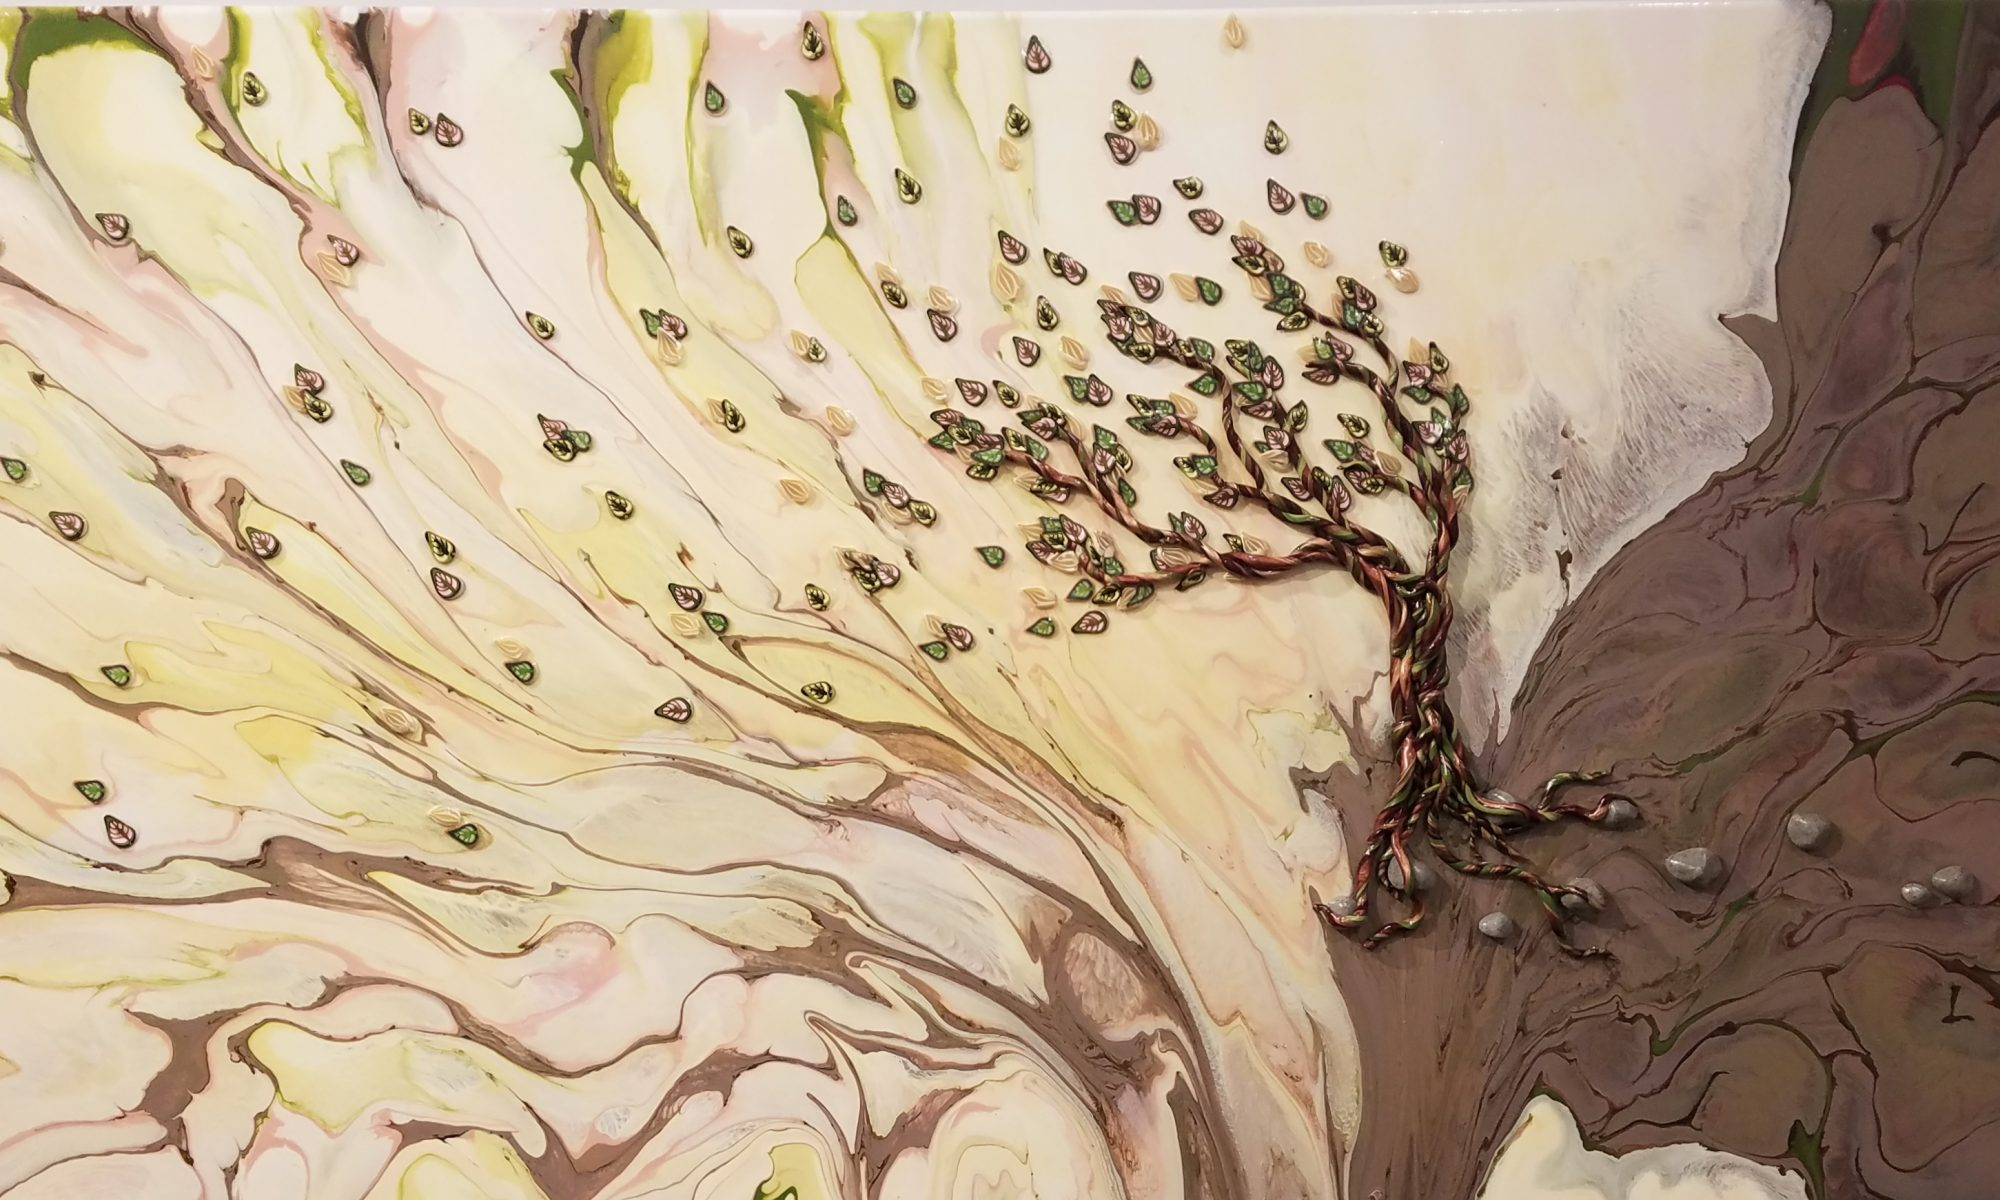 A tree sits on a brown cliff. The cliff and sky (in pale green and pink) are painted in acrylic. A polymer tree with leaves in green and pink appears to be blowing in the wind with leaves fluttering to the left. Original artwork by Anna Loscotoff.